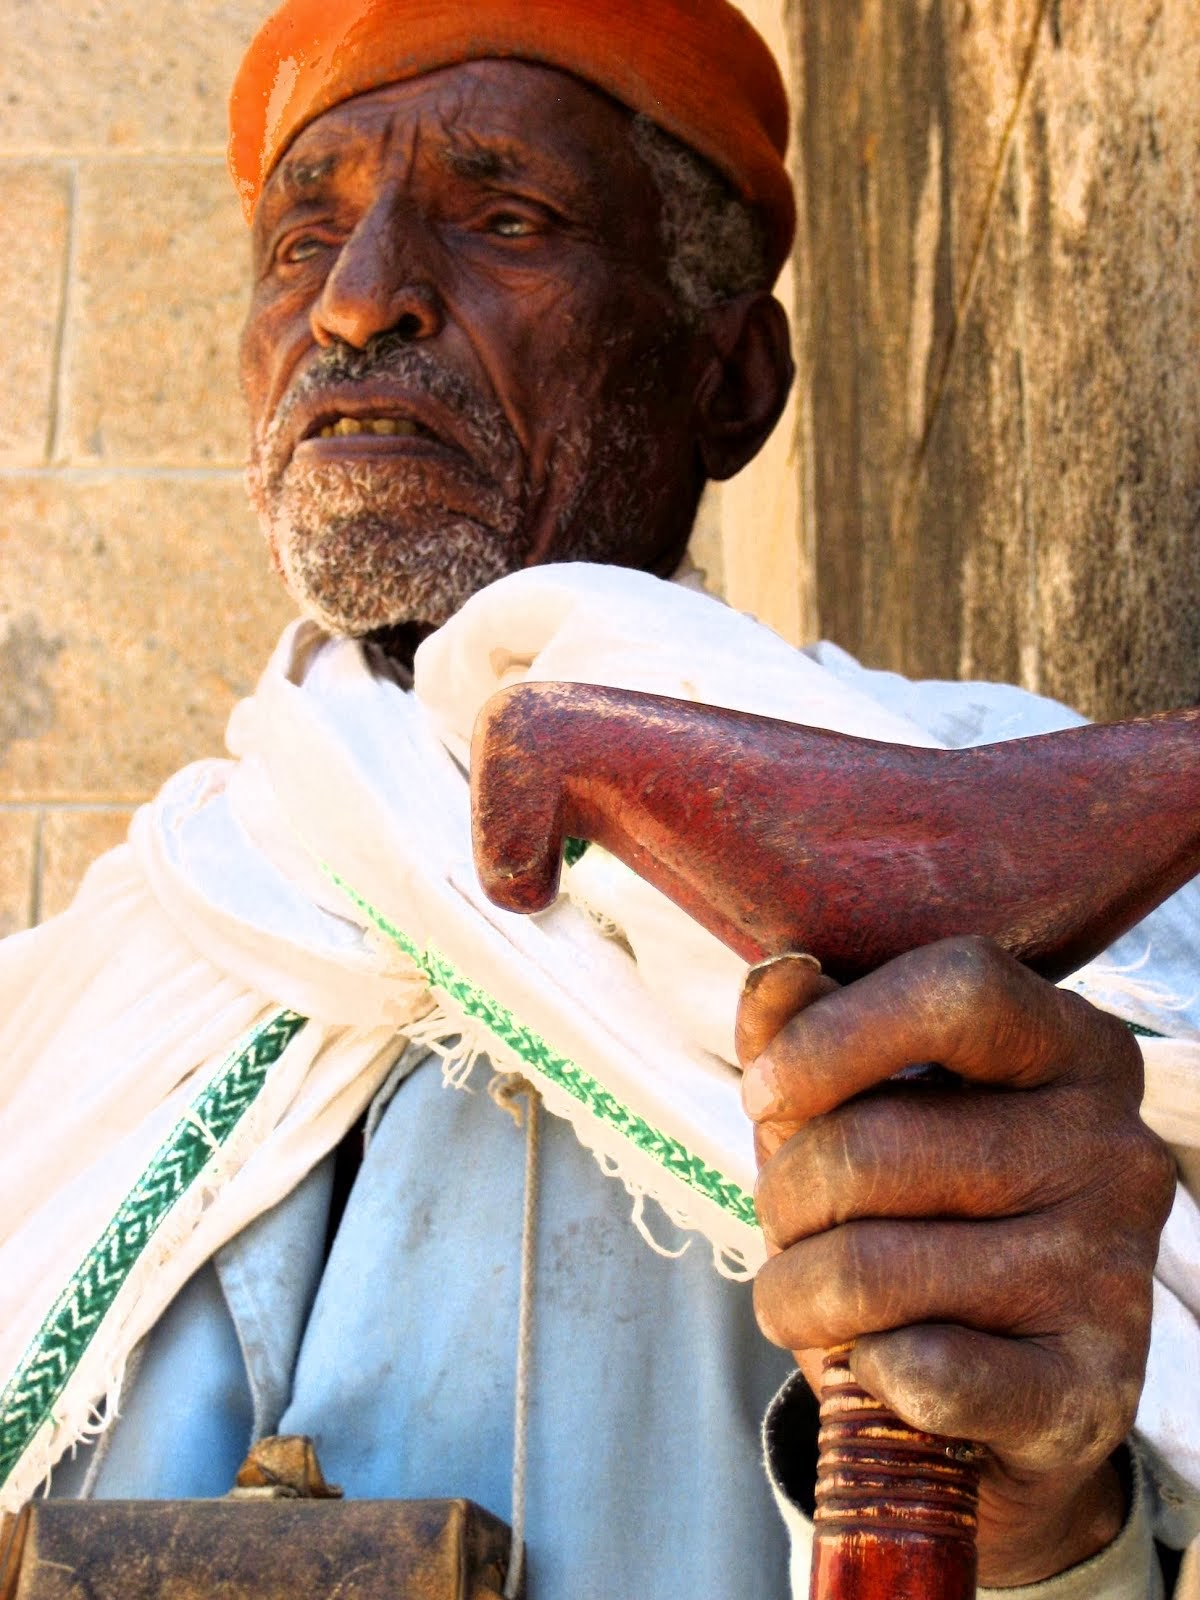 Blind Faith, Ethiopia 2006 by Karin Lisa Atkinson